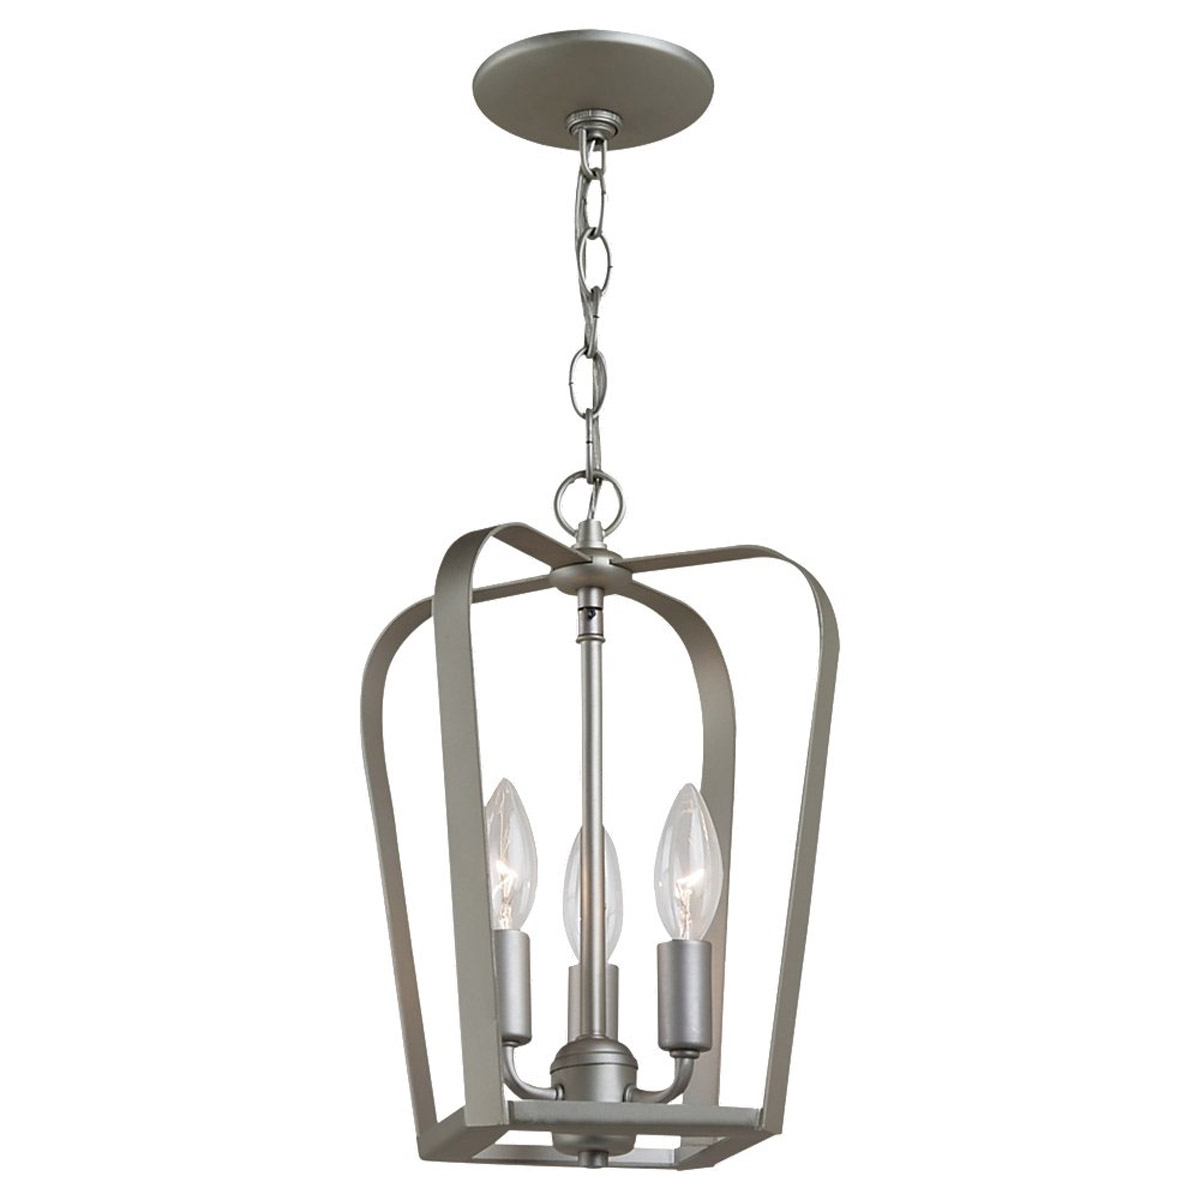 Sea Gull Lighting Windgate 3 Light Foyer Pendant in Painted Brushed Nickel 54940-753